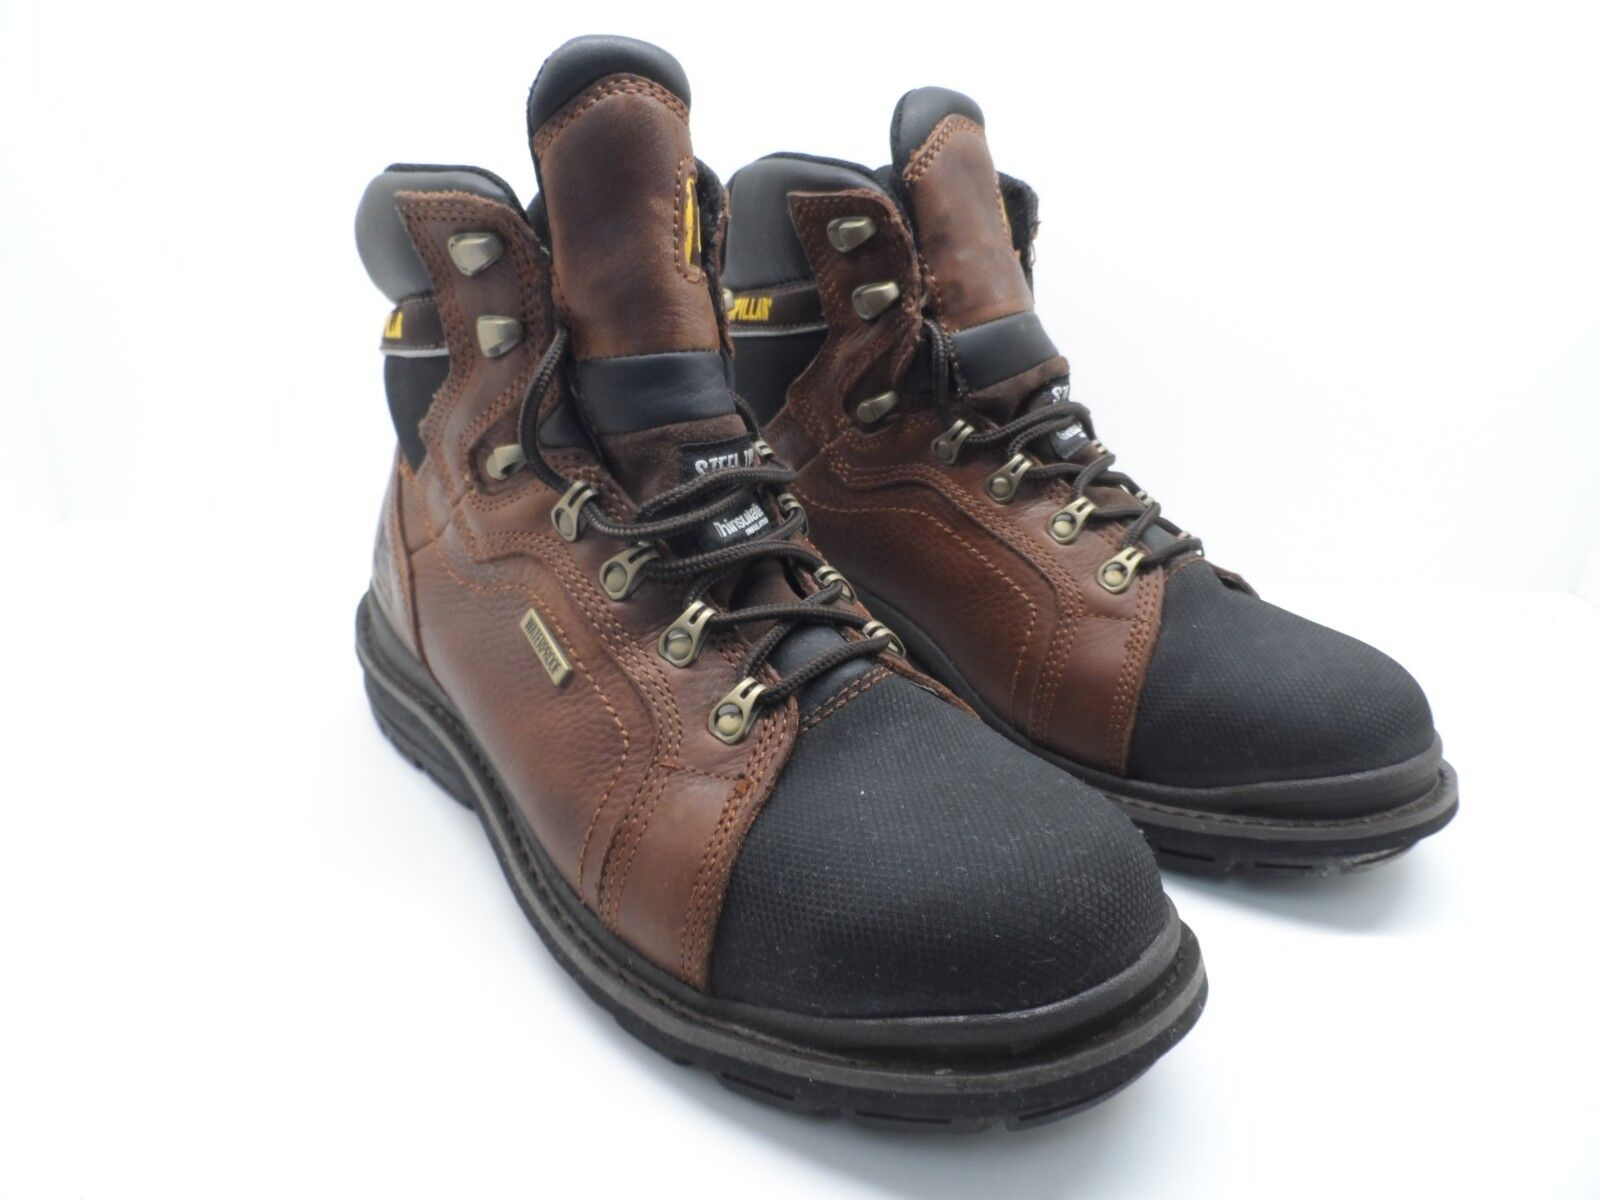 CAT Caterpillar Men's Manifold Tough Waterproof Work Boot Brown Black Size 11.5W